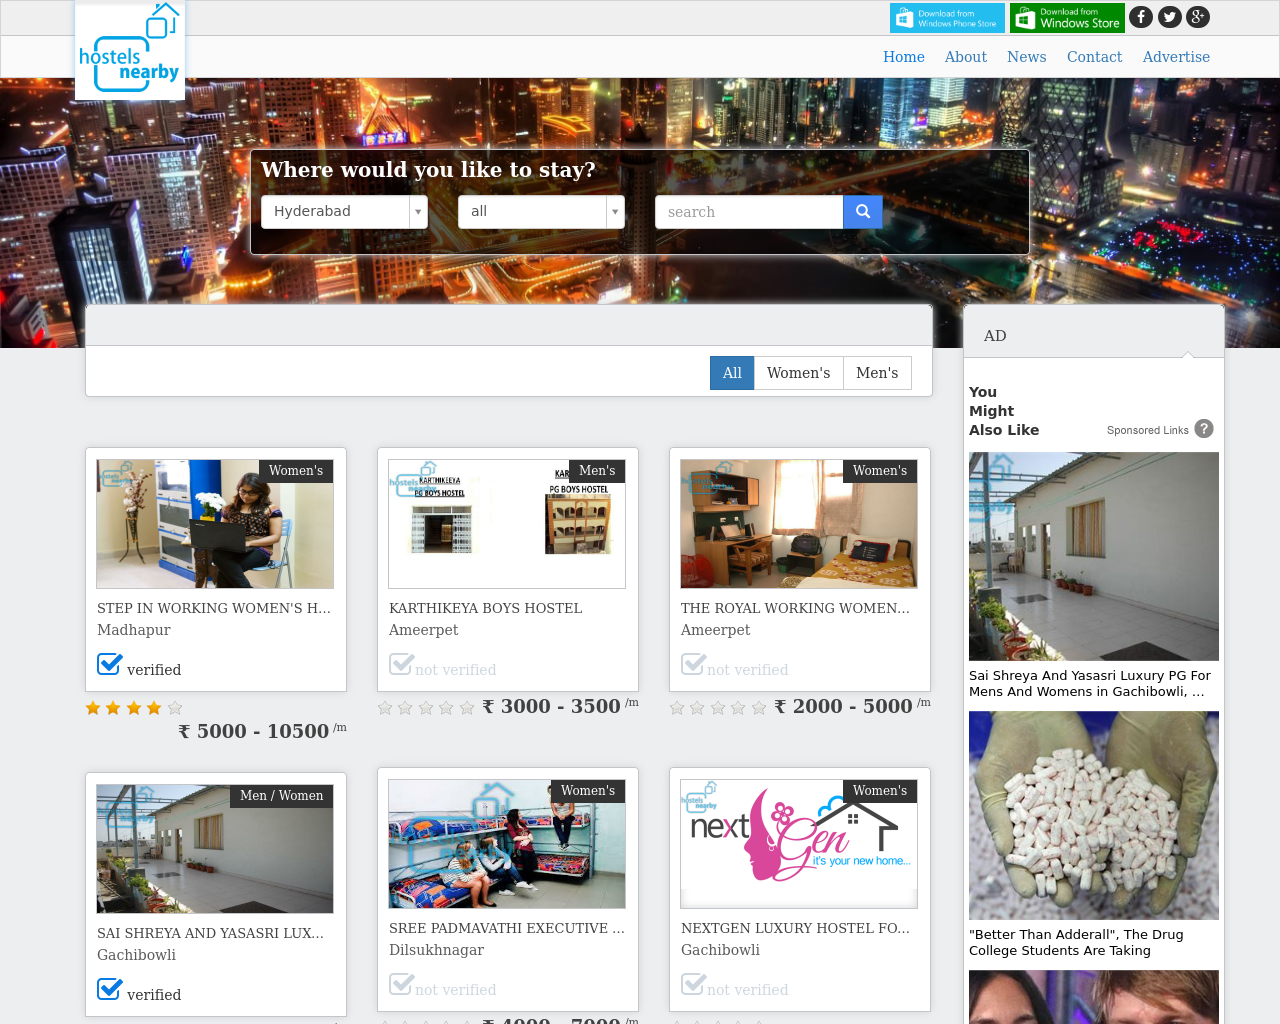 Hostels-Nearby-Advertising-Reviews-Pricing